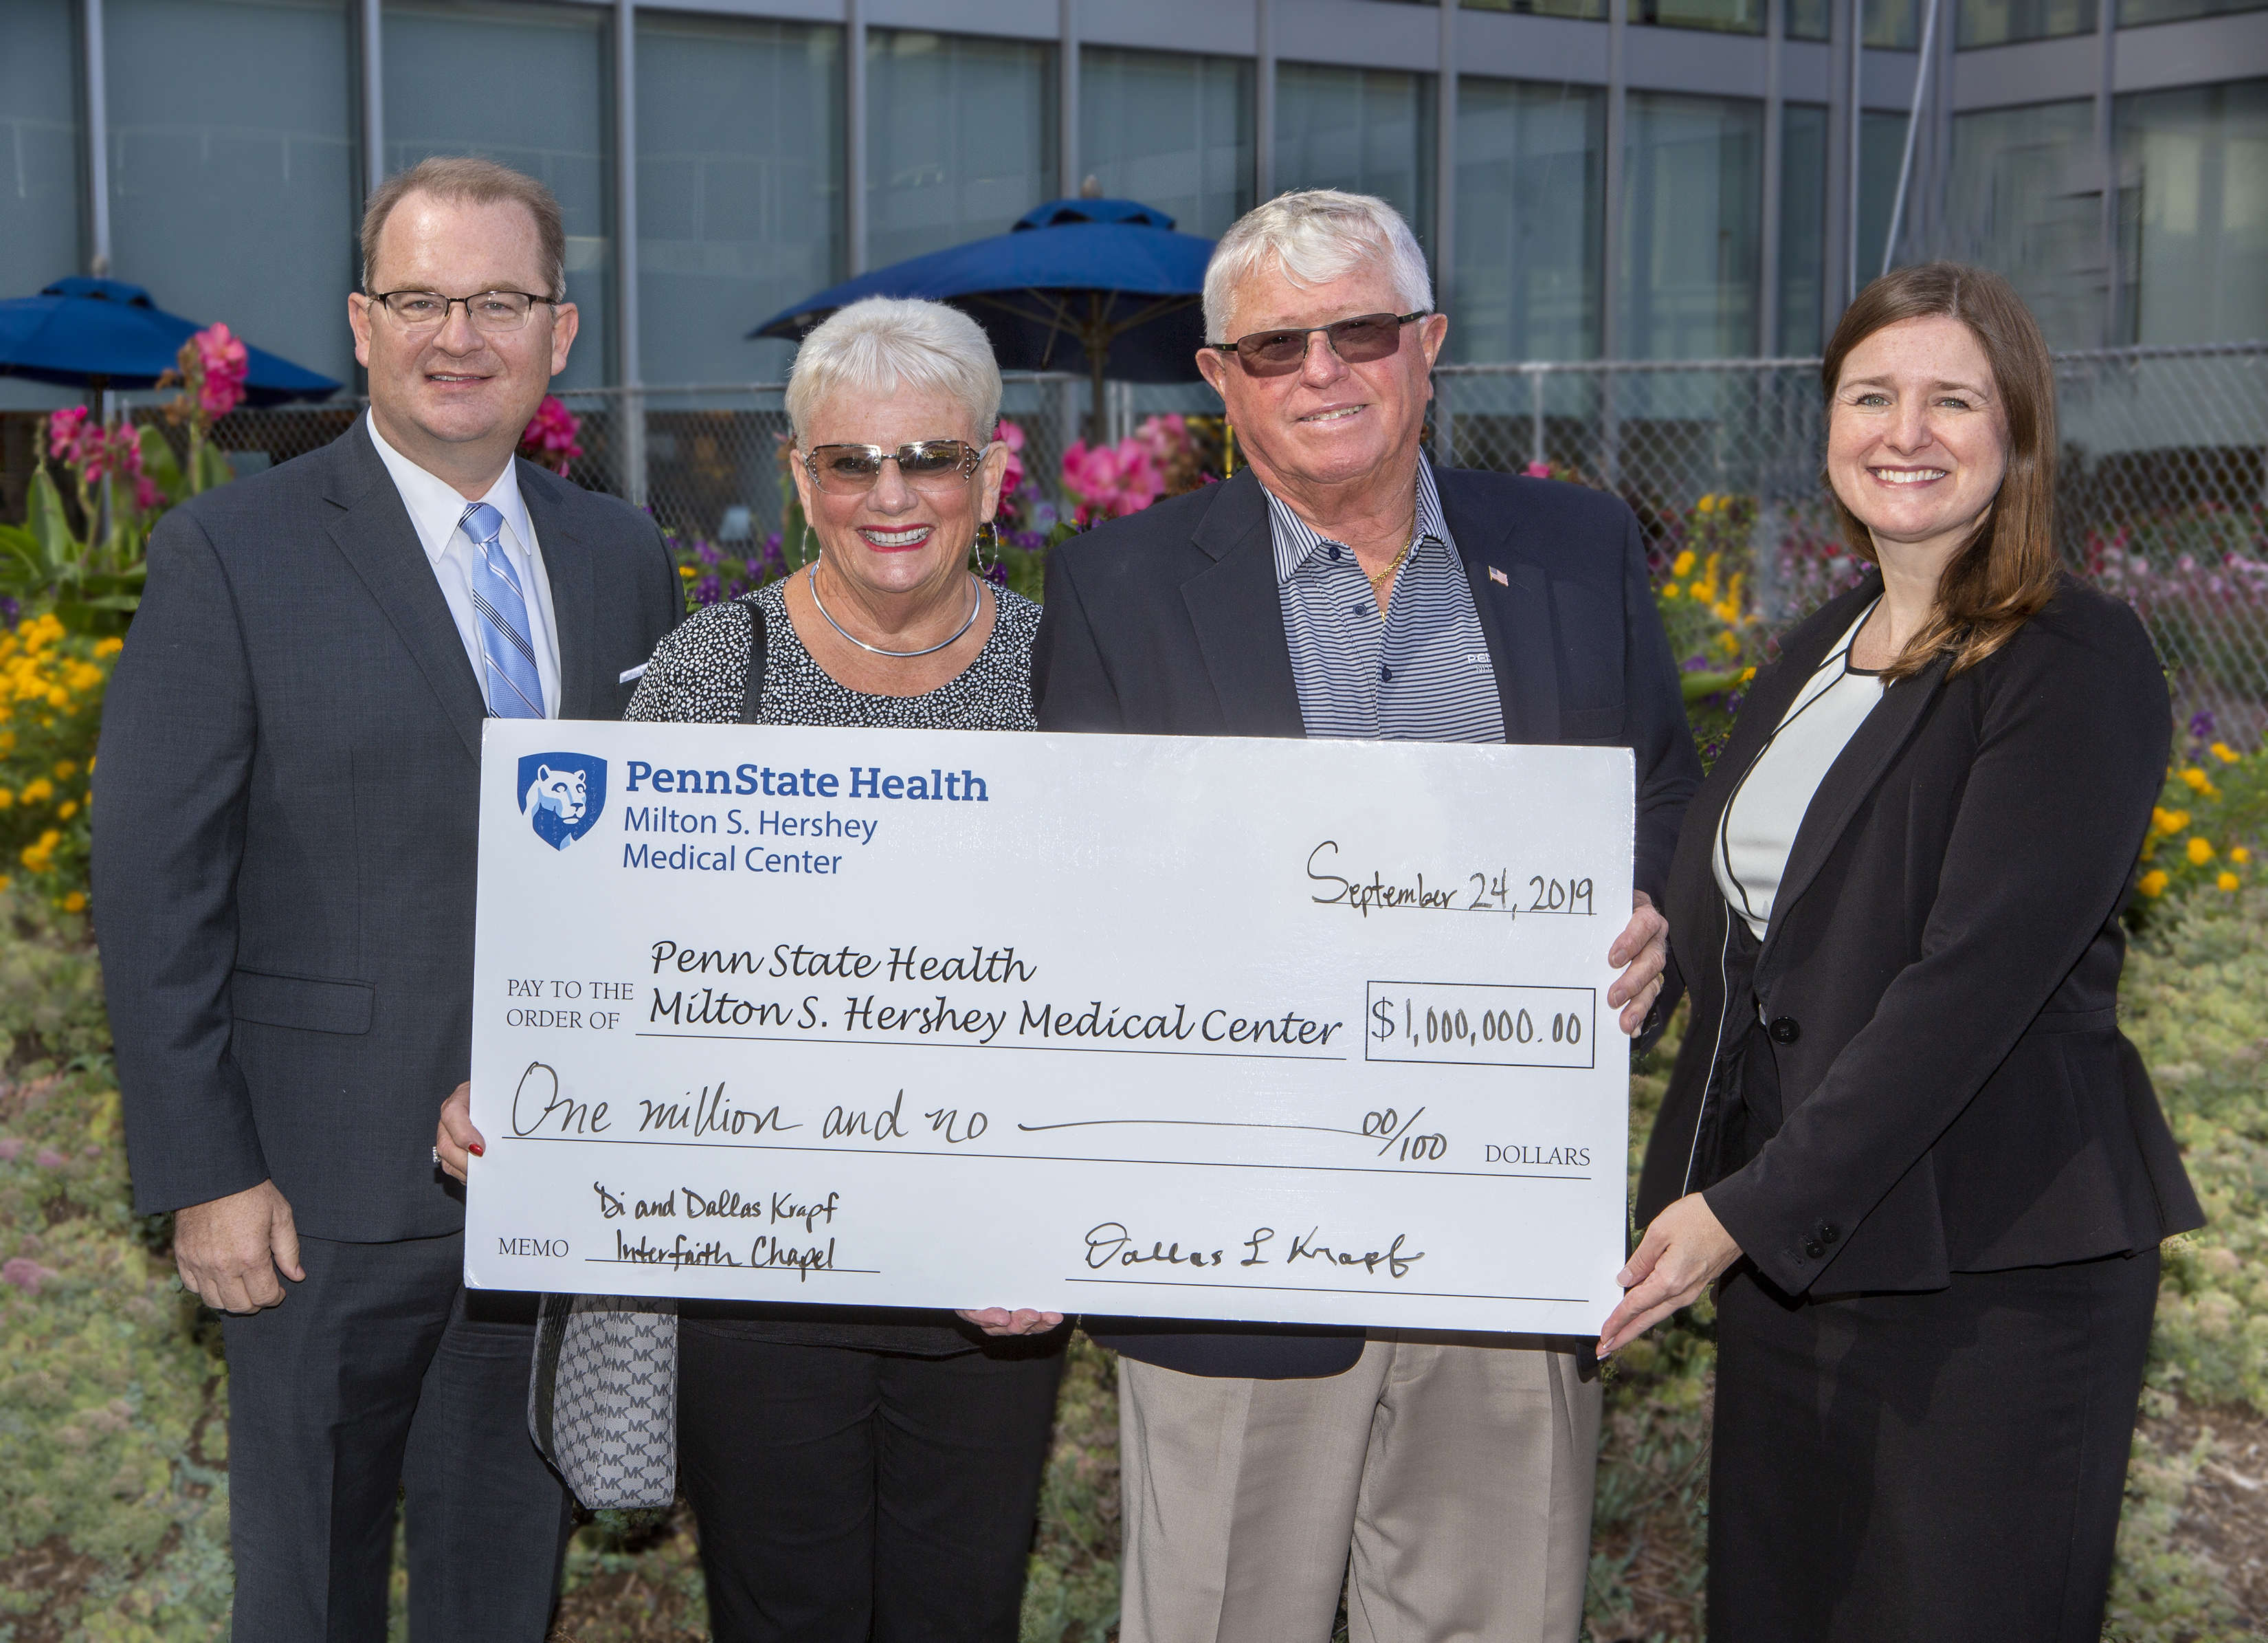 Four people – two men and two women – pose outside for a photo holding an oversized check made out to Penn State Health Milton S. Hershey Medical Center, in the amount of $1 million. It's signed by Dallas Krapf. A building with windows is in the background, as are bushes and flowers.